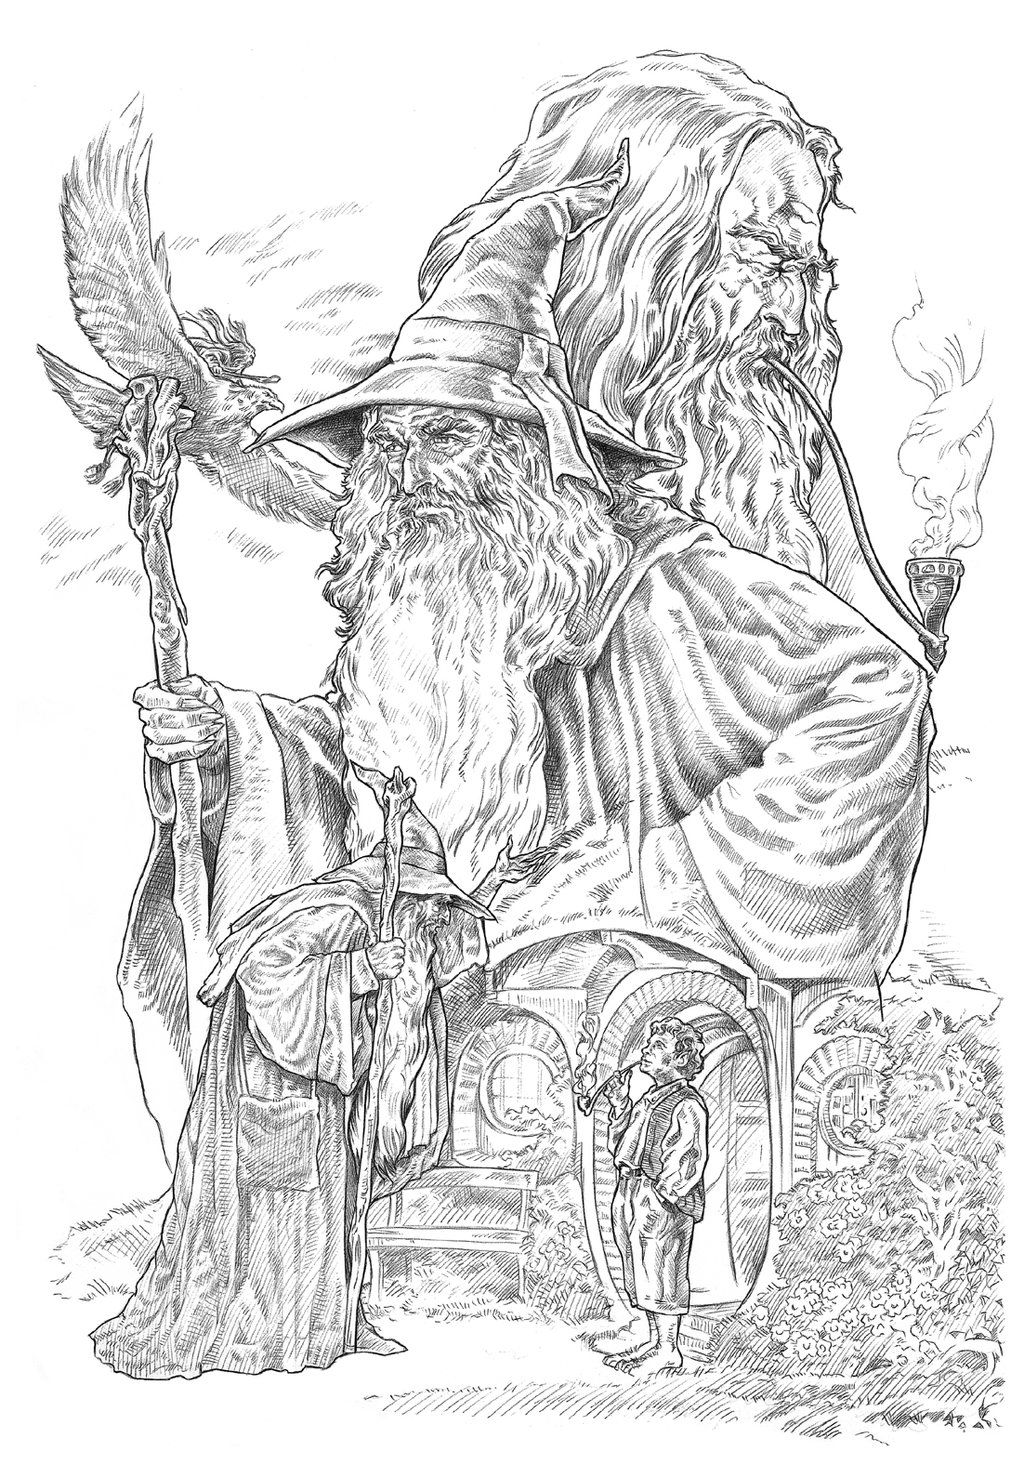 Gandalf By Nachocastrodeviantartcom On At Deviantart From